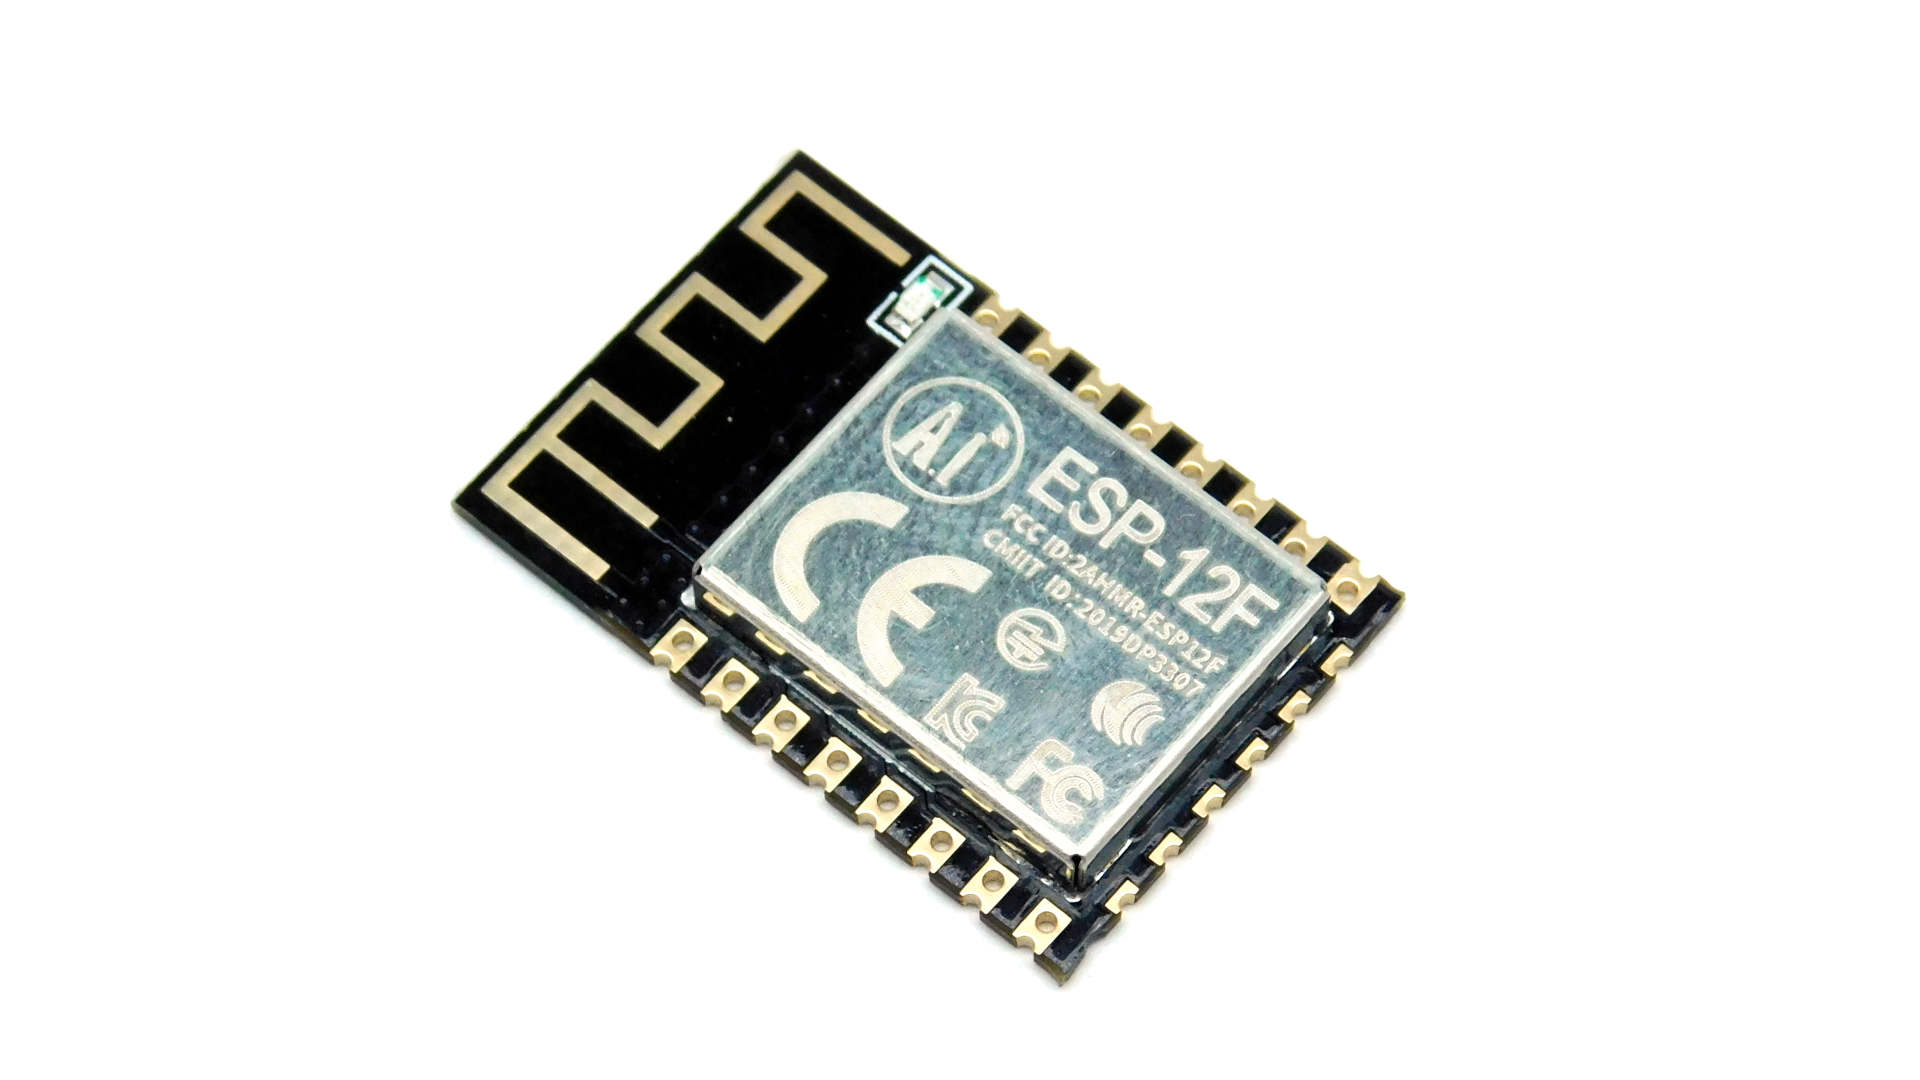 ESP-8266-12 WiFi module with 9 GPIO